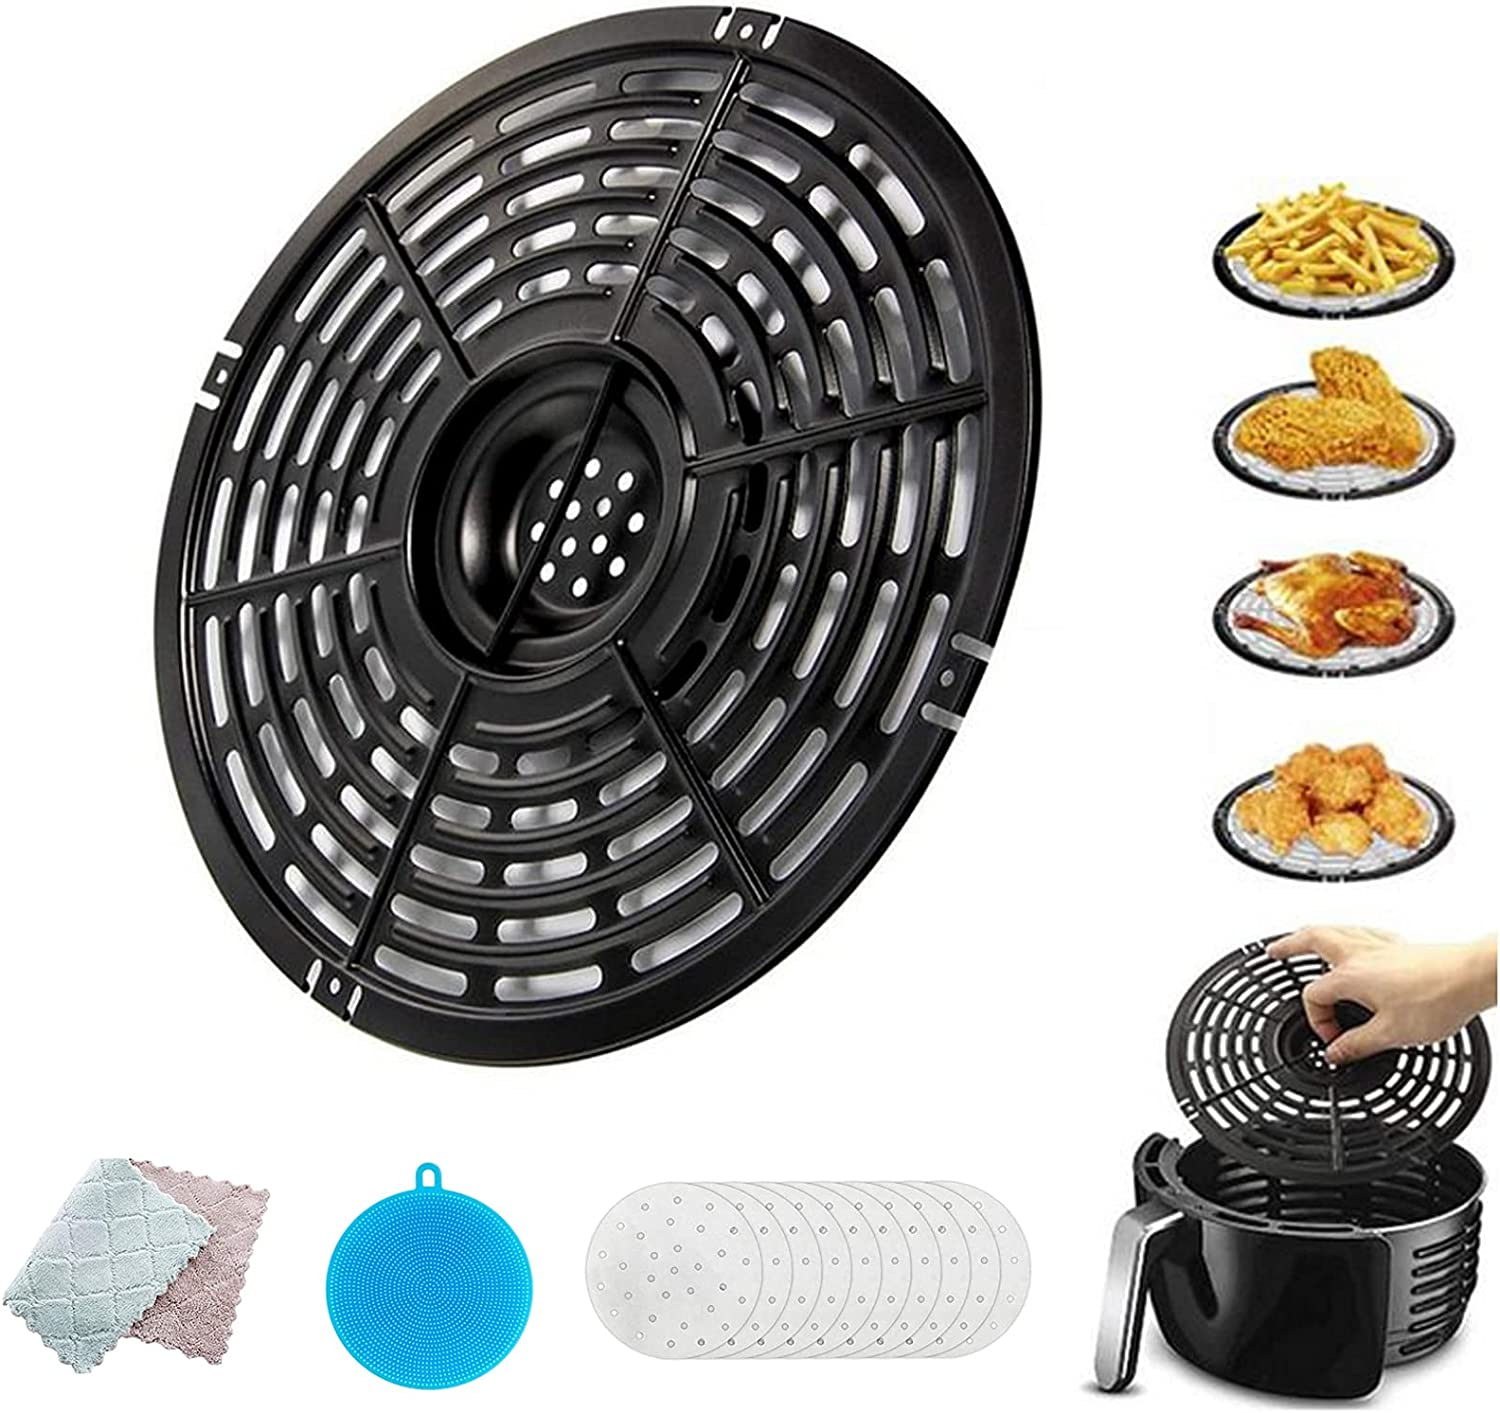 Air fryer Replacement Grill Plate Non-Stick Fry Pan Air Fryer Accessories Suit For GoWise PowerXL Gourmia Dash Emeril Lagasse 5QT Crisper Plate with Silicone Sponge Cleaning Cloth and Filter Paper